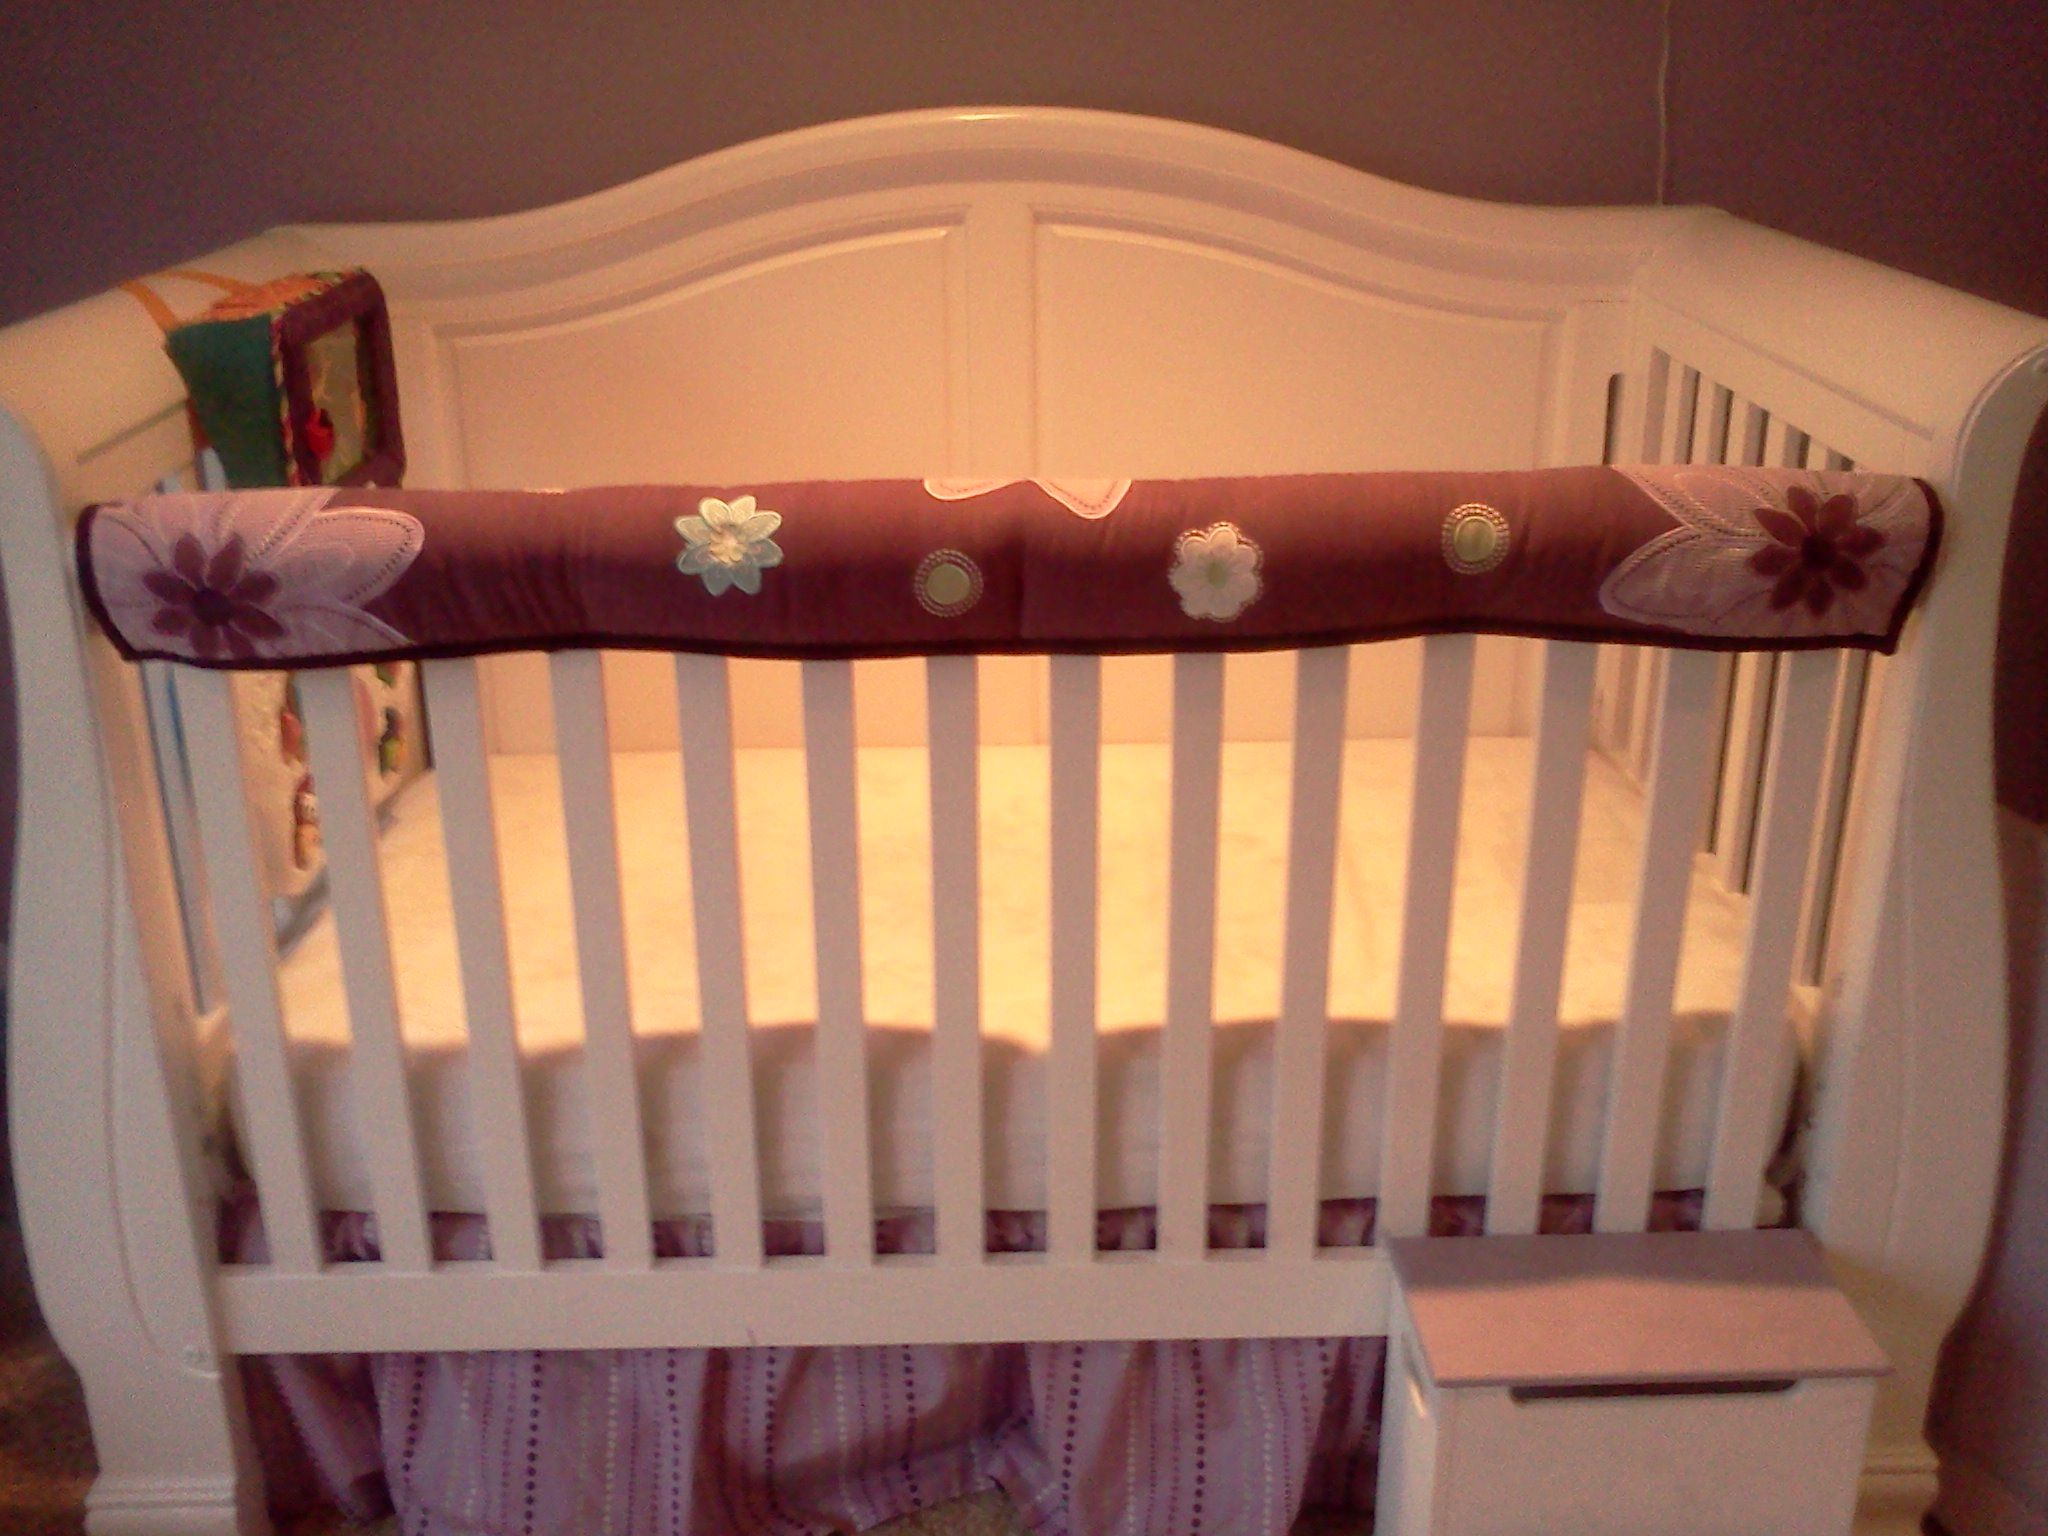 Bumper Pad Upcycle My Baby S Bumper Pad Converted Into A Teething Guard For Her Crib Rail Easy To Tie On And Take O Baby Bumper Baby Room Organization Kids